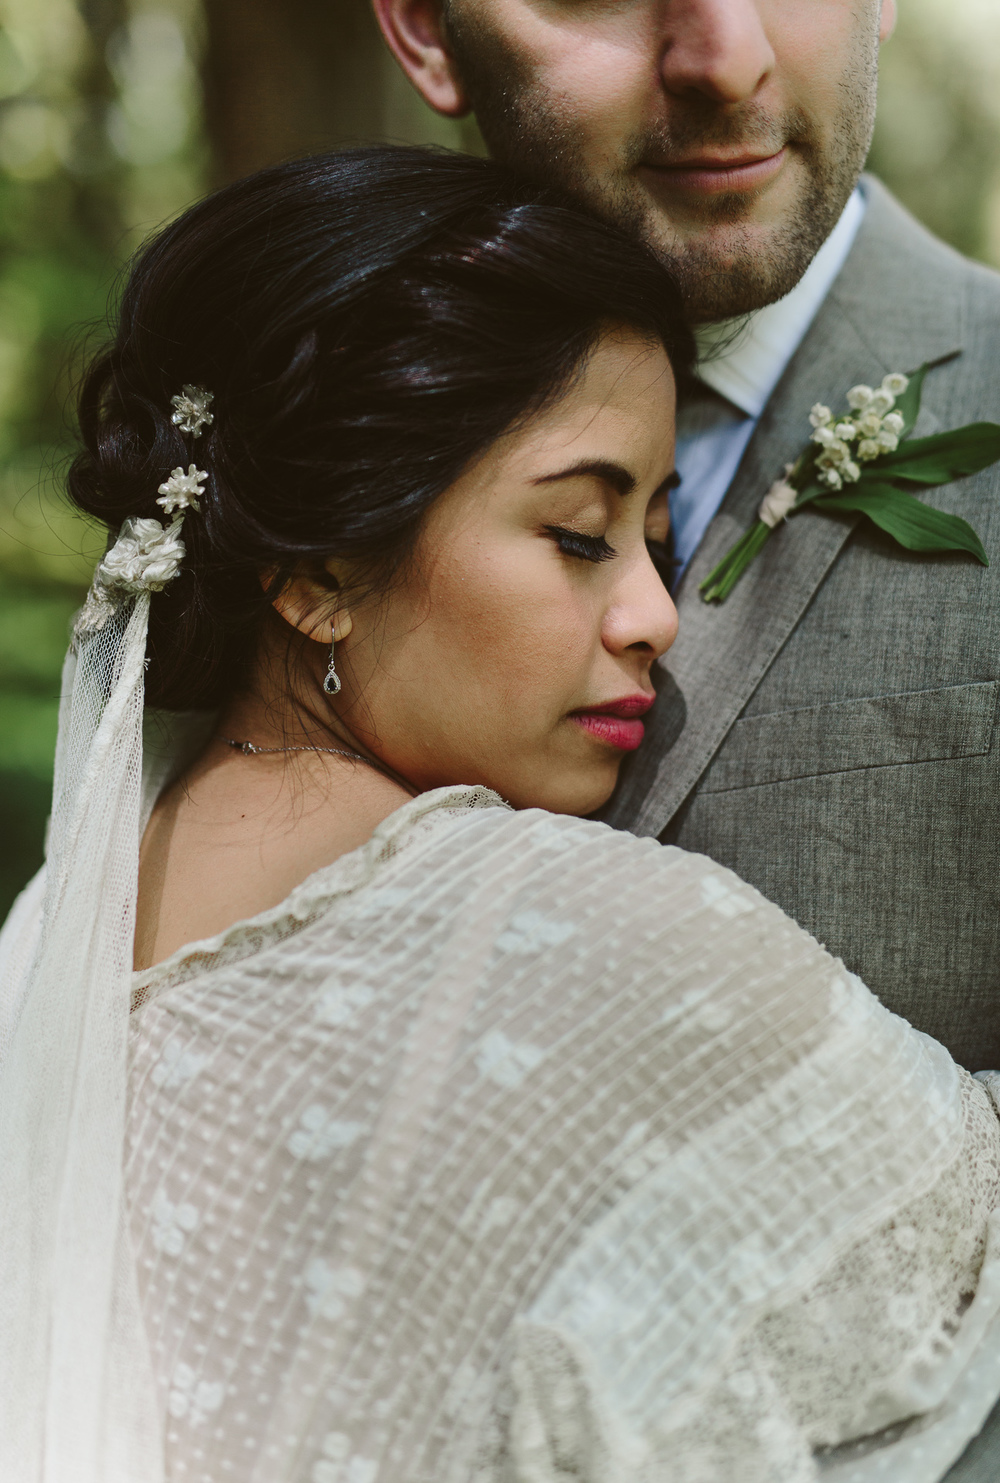 intimate-wedding-portland-oregon-jess-hunter-photography-0929.jpg